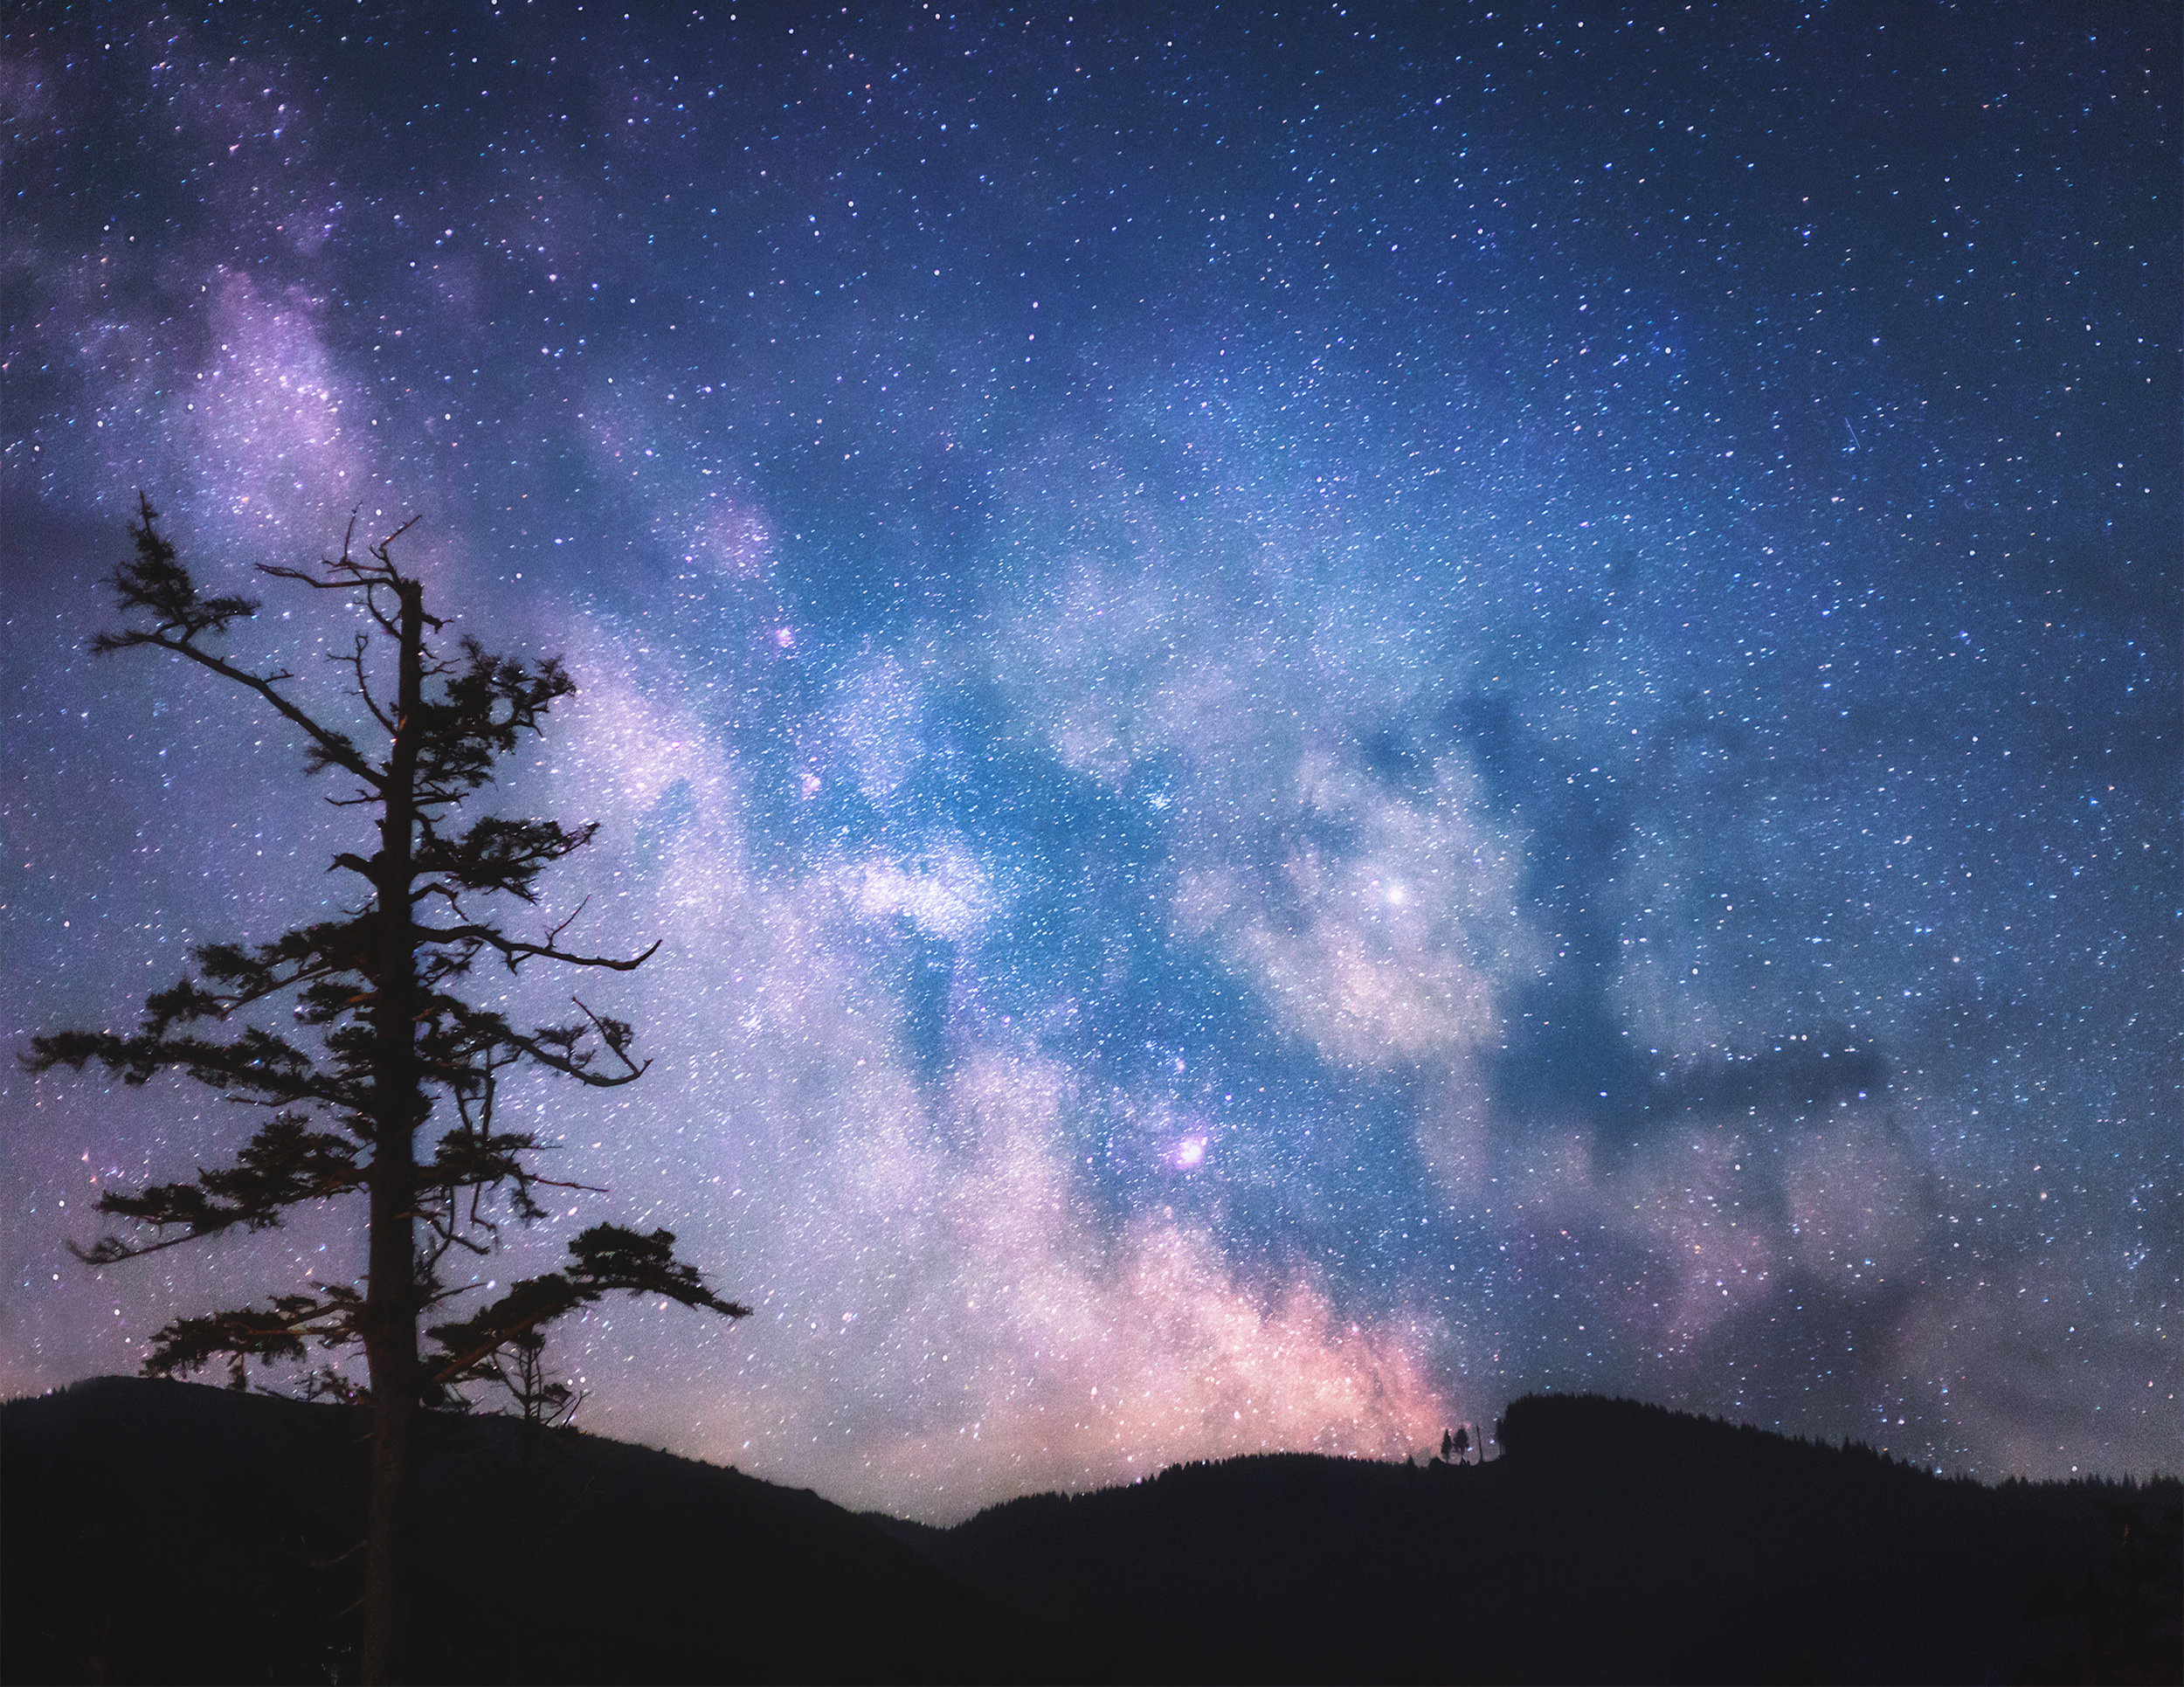 The Milky Way from Cape Lookout Campground